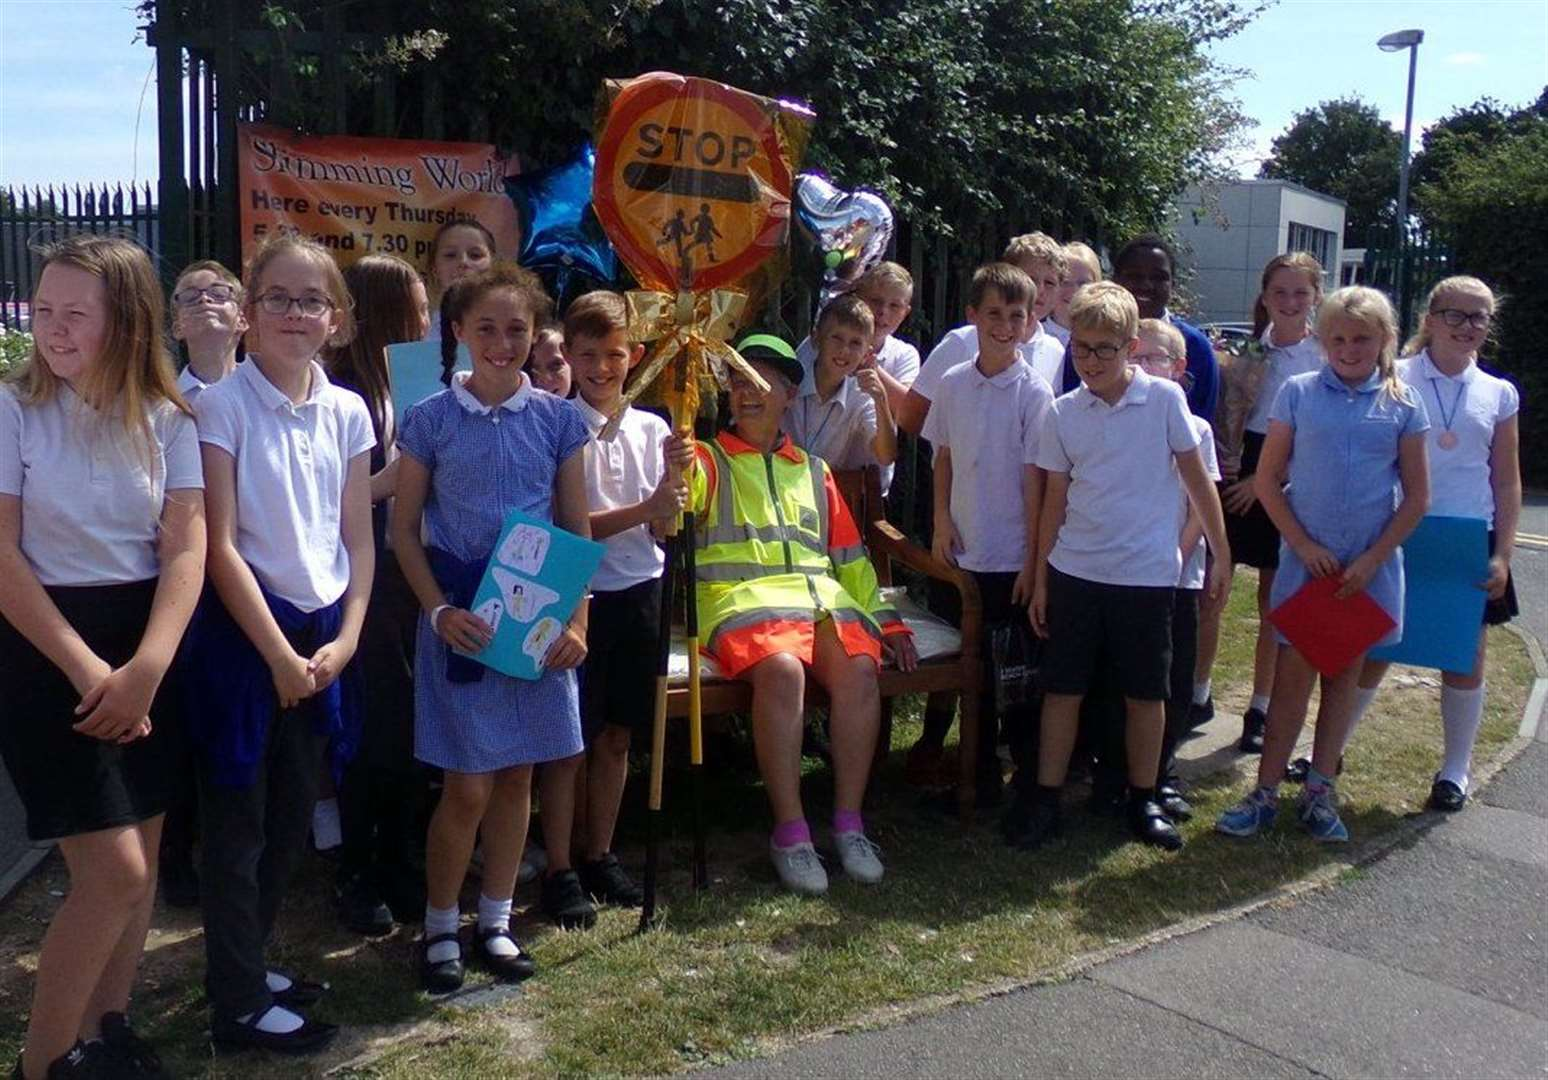 Lollipop lady retires after more than 30 years